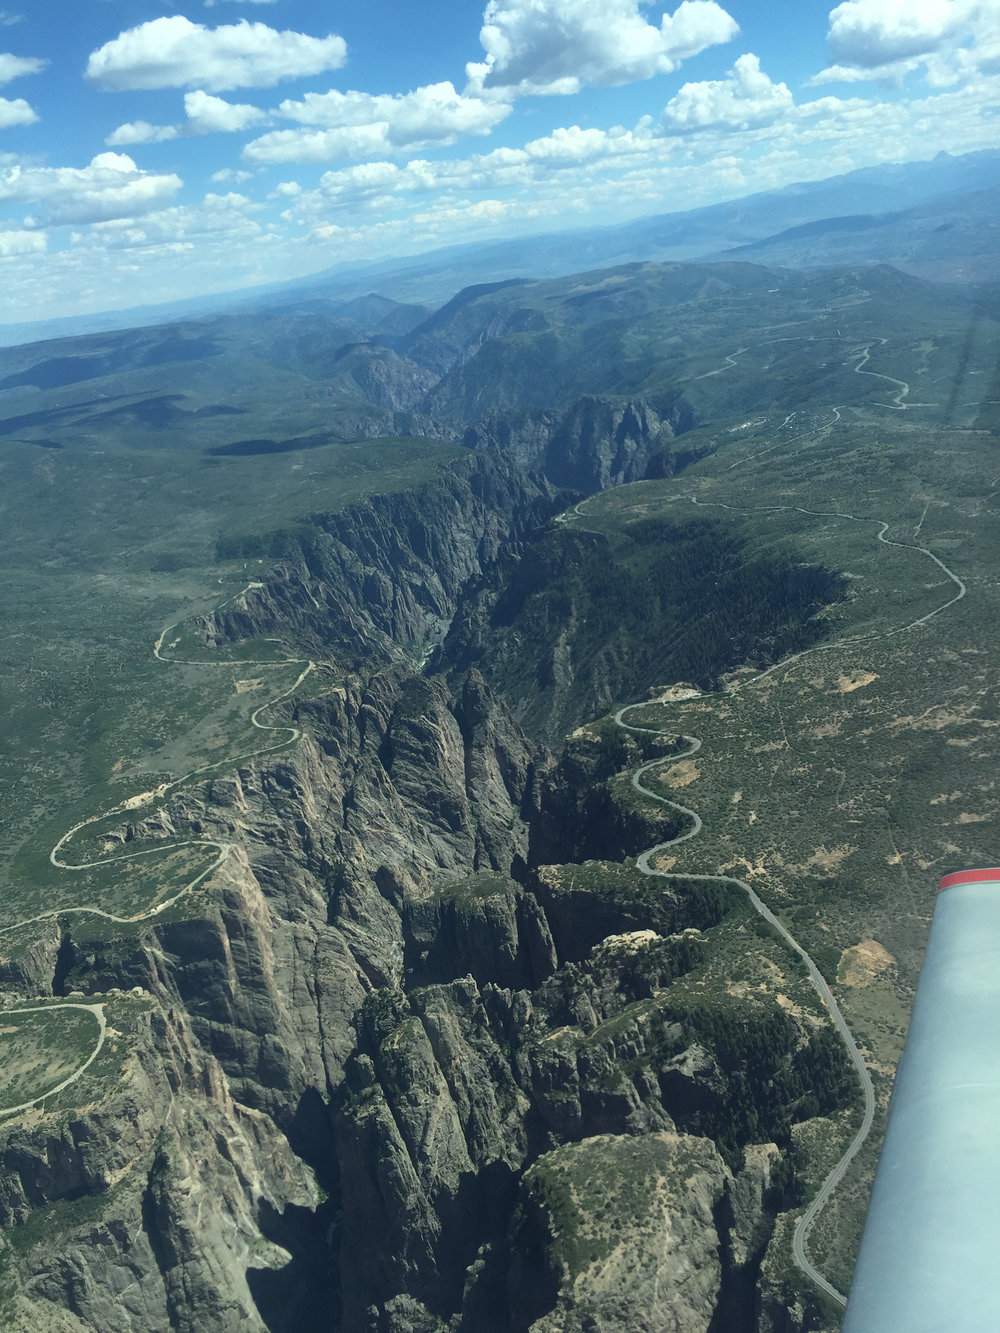 Rim roads on either side of Black Canyon of the Gunnison National Park from The Silver Bullet